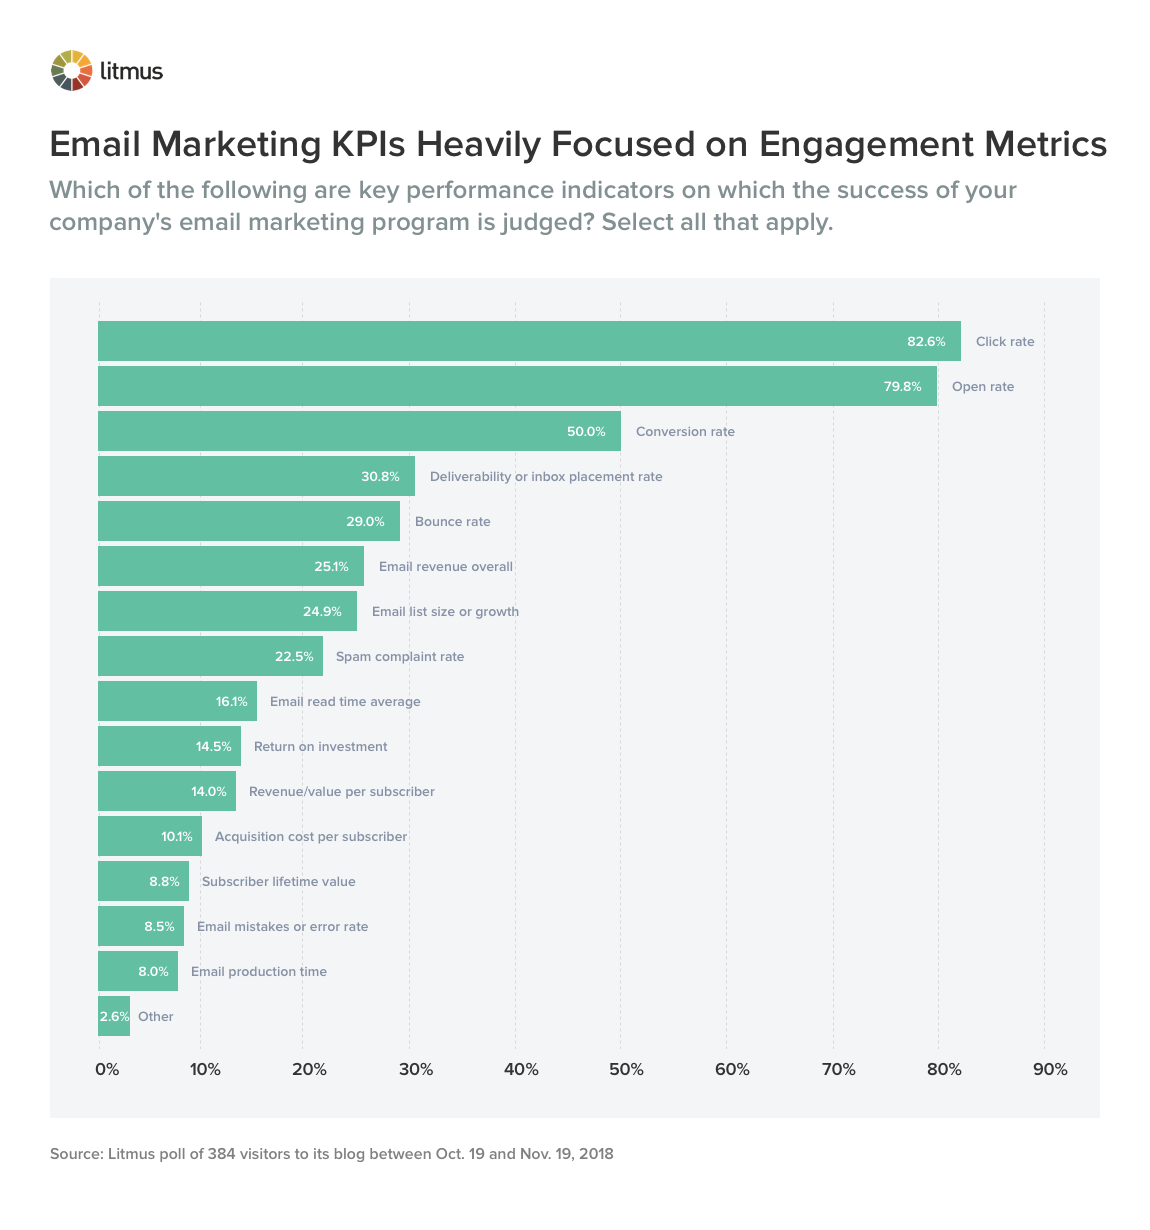 Email Marketing KPIs Heavily Focused on Engagement Metrics